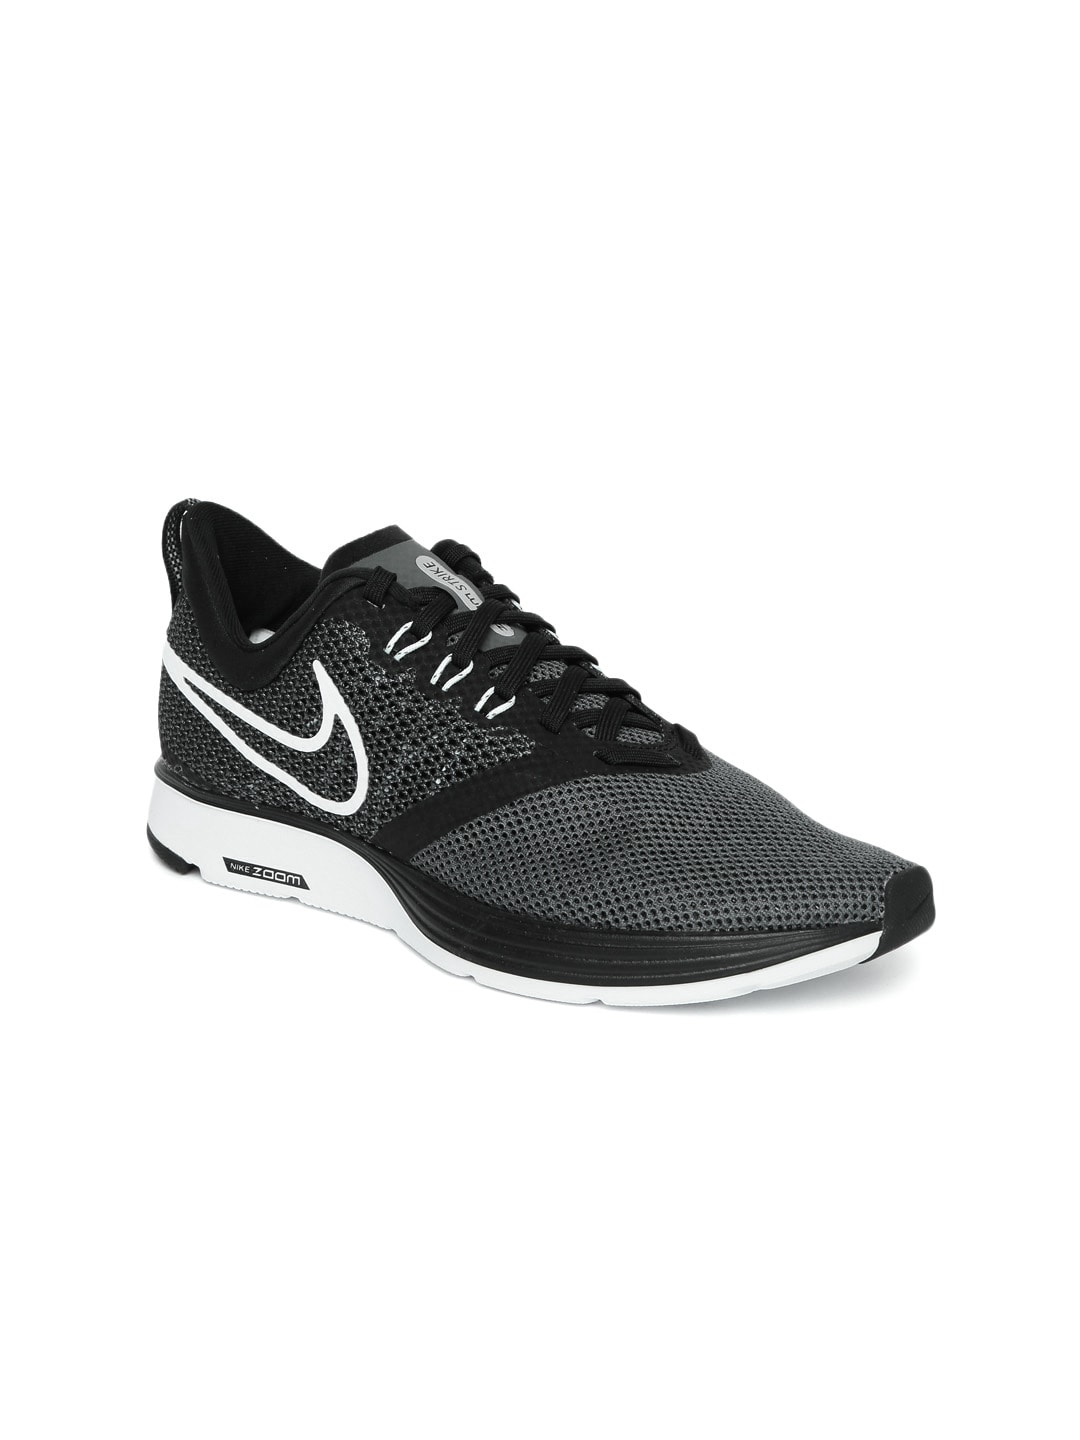 7f7c03e523640 Nike Running Shoes - Buy Nike Running Shoes Online